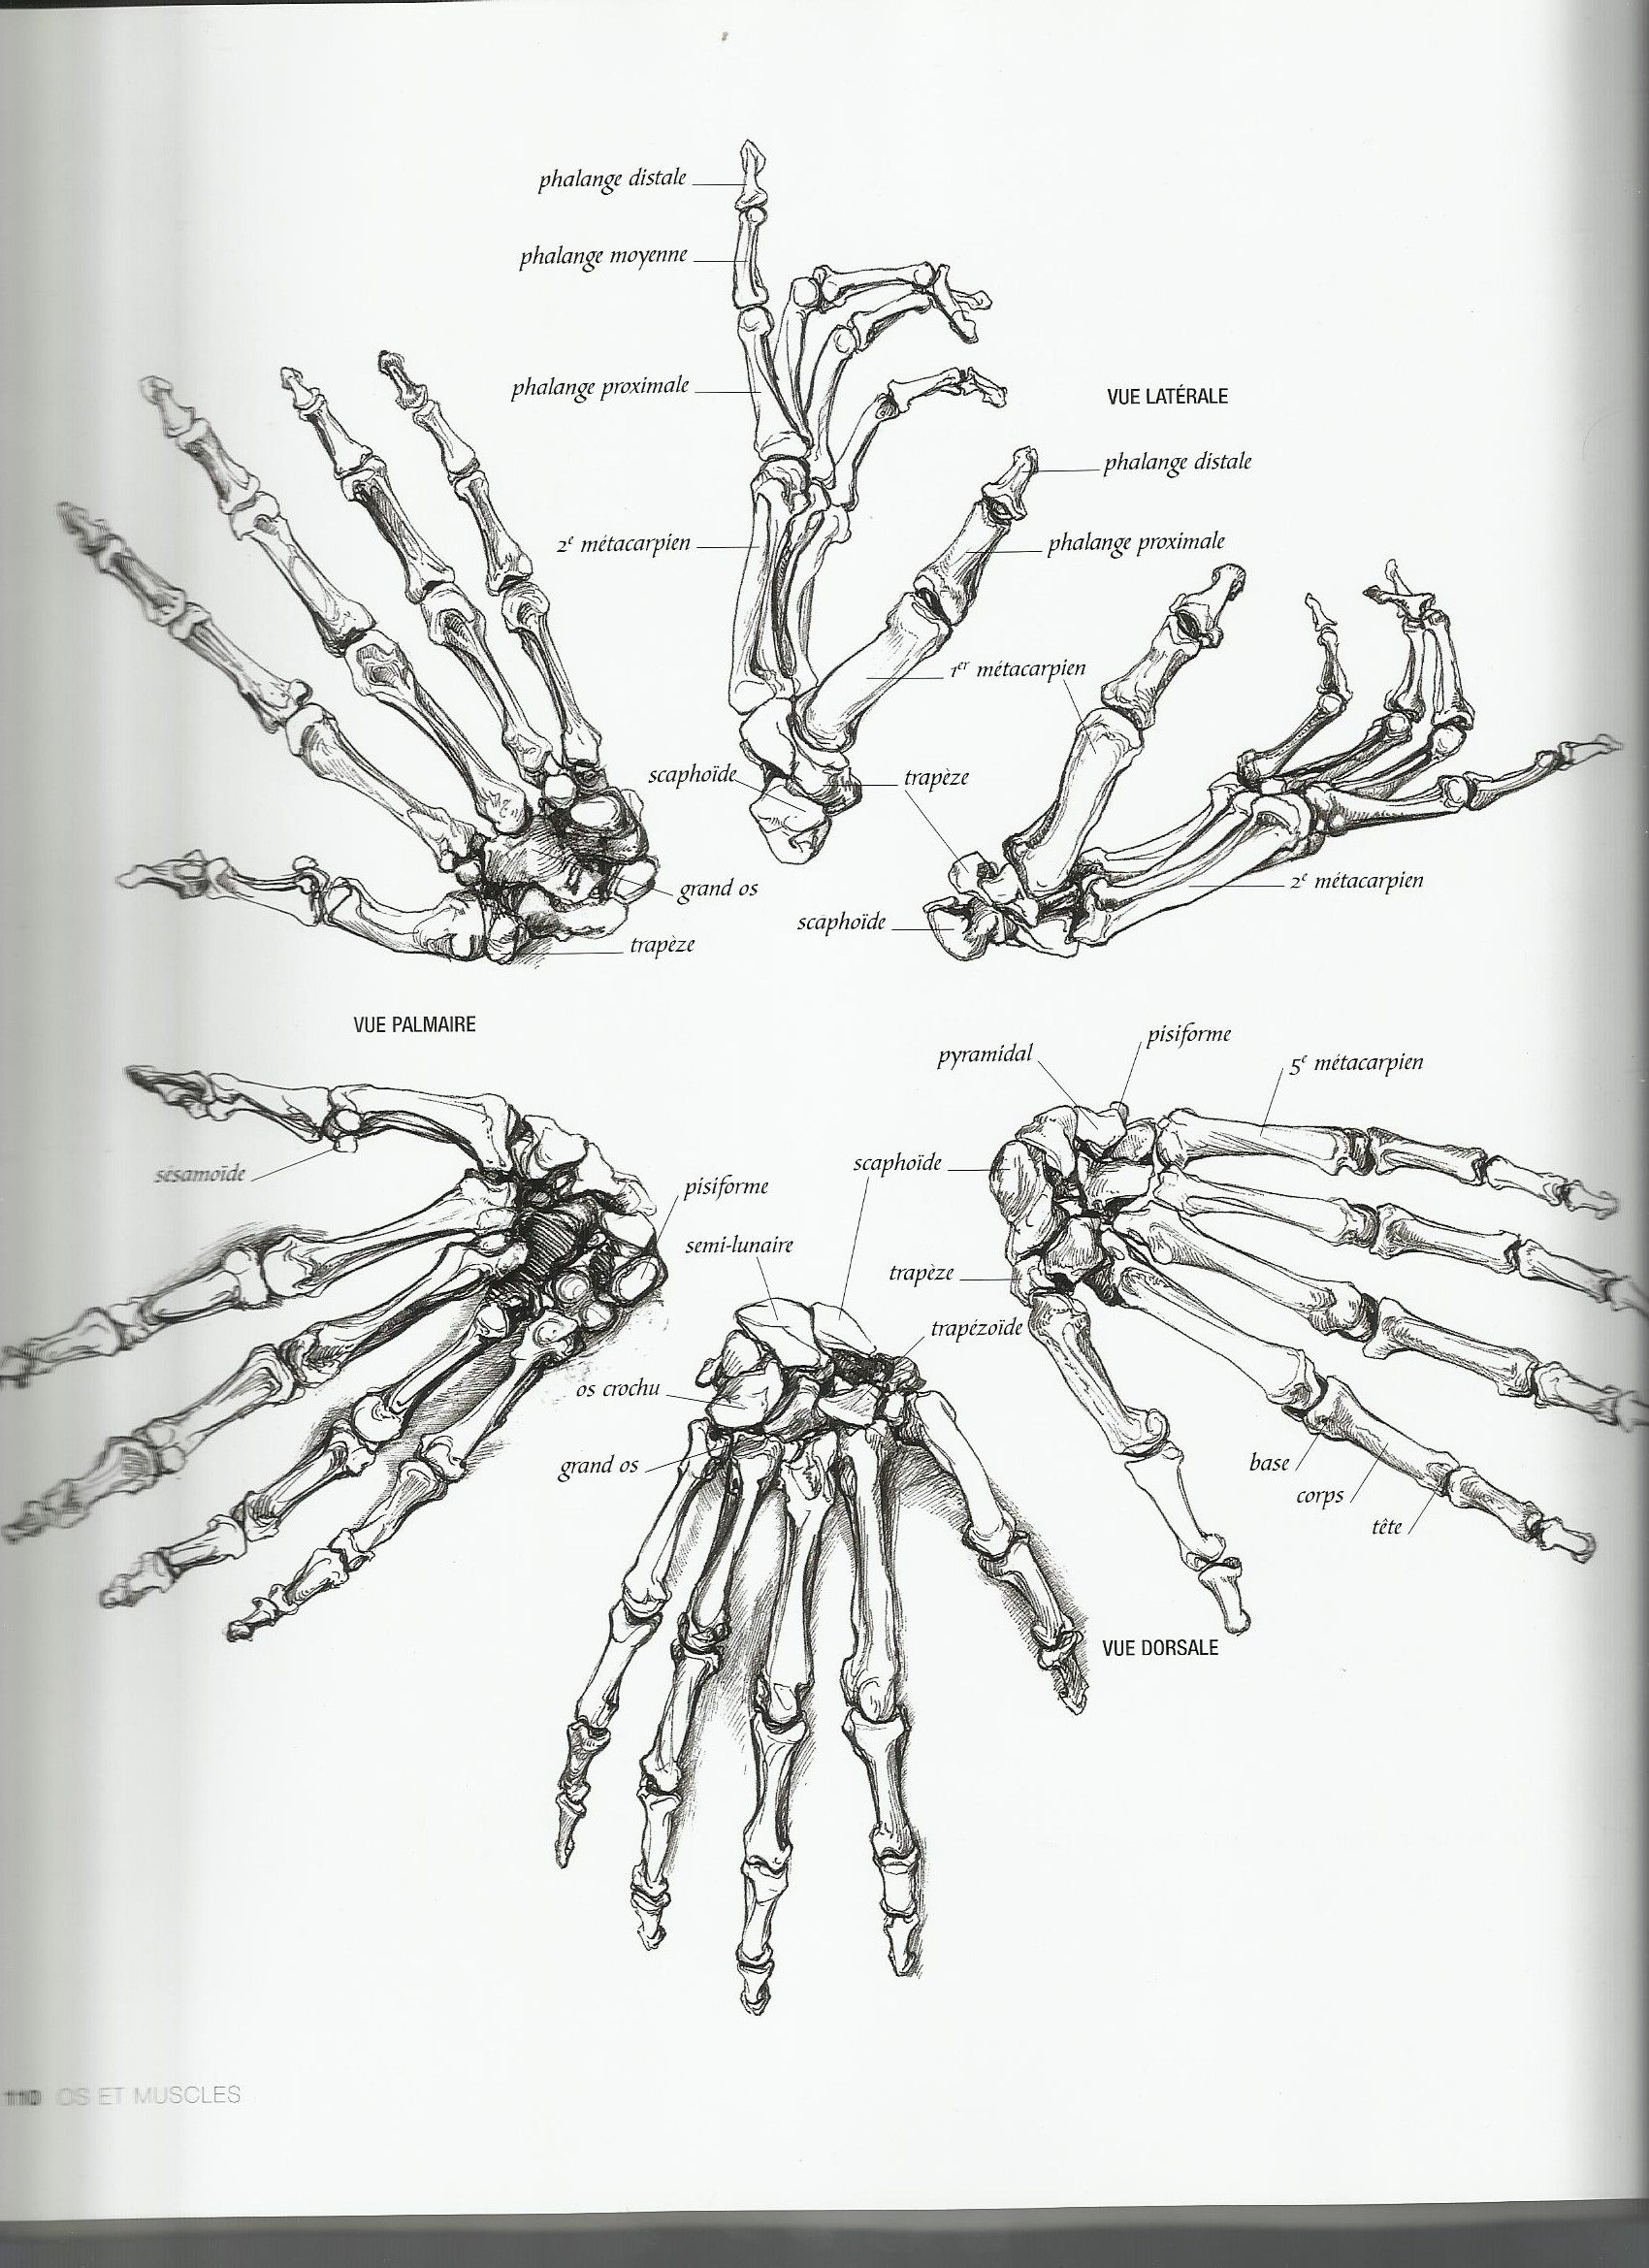 Pin by Katty W on Anatomy Skeleton hands drawing